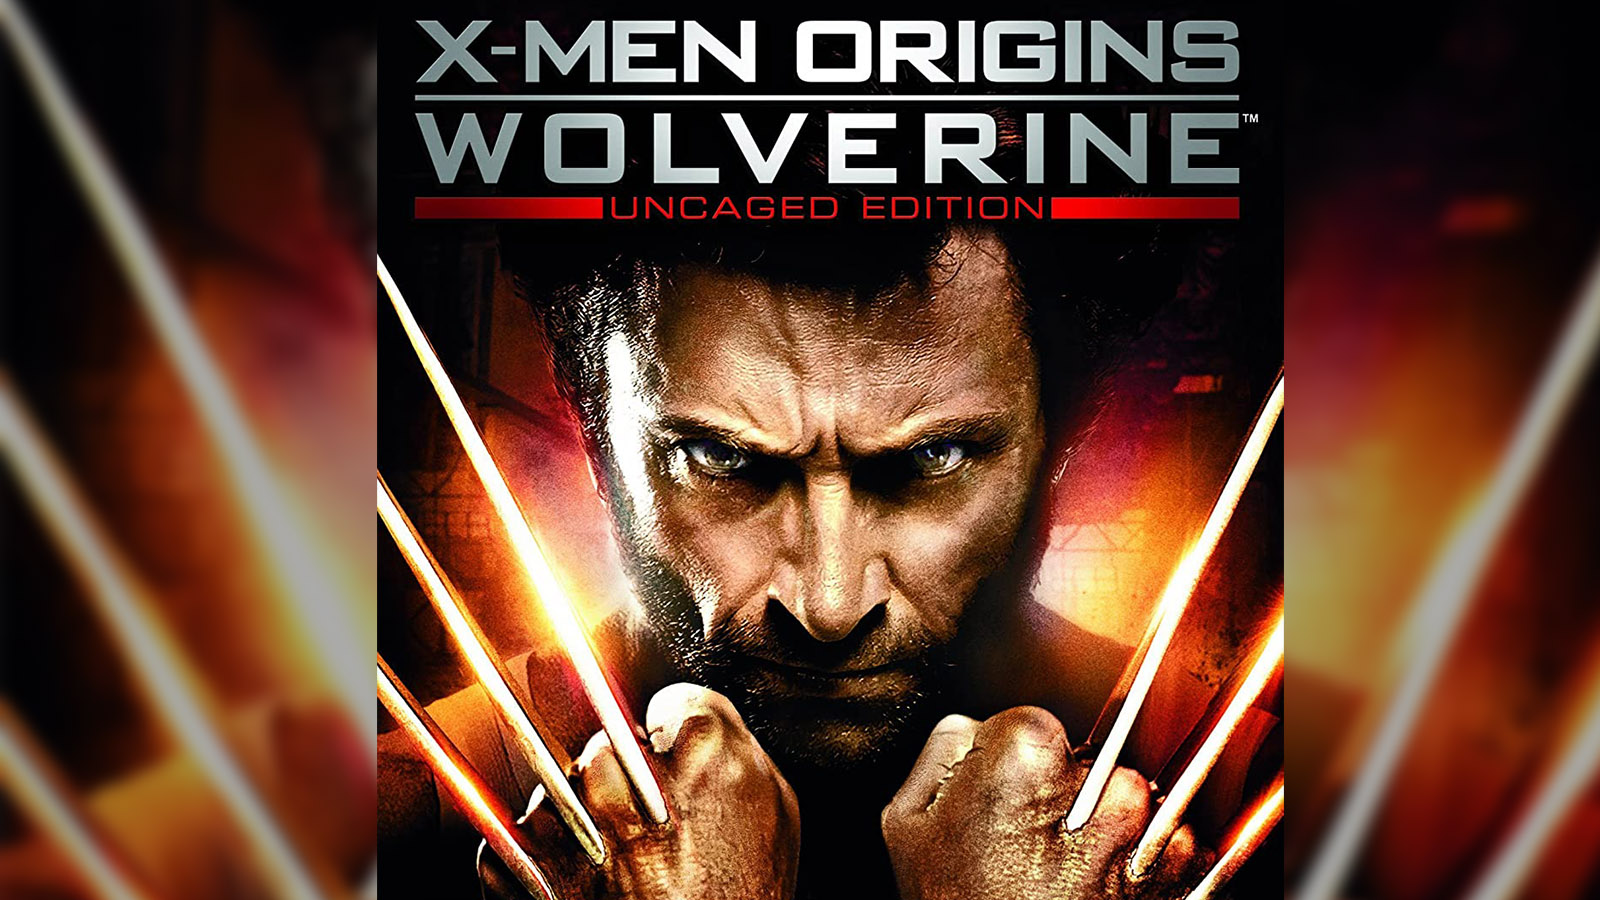 X-Men Origins: Wolverine was released for the PS3, Xbox 360, Windows, Wii, PS2, DS, and PSP.